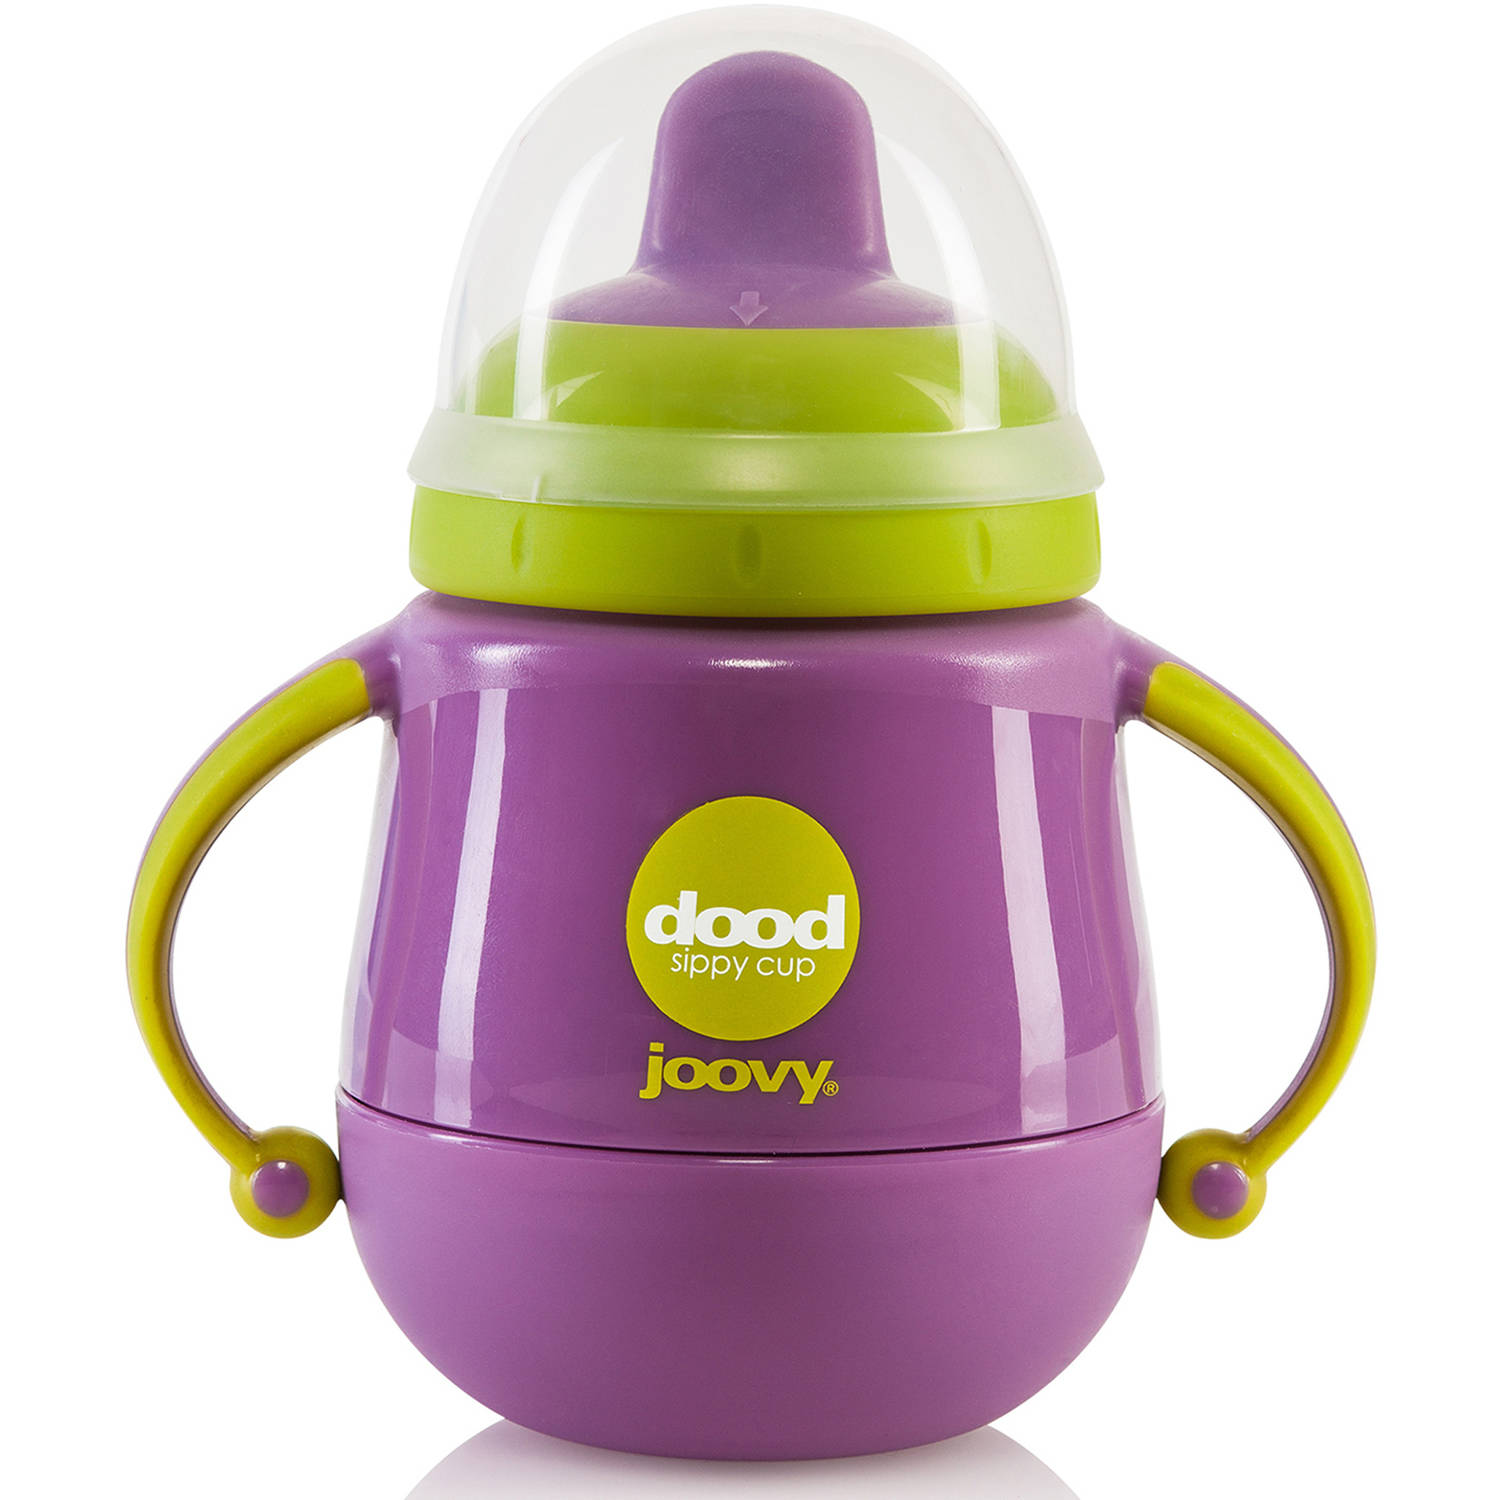 Joovy Dood Soft Spout Trainer Sippy Cup